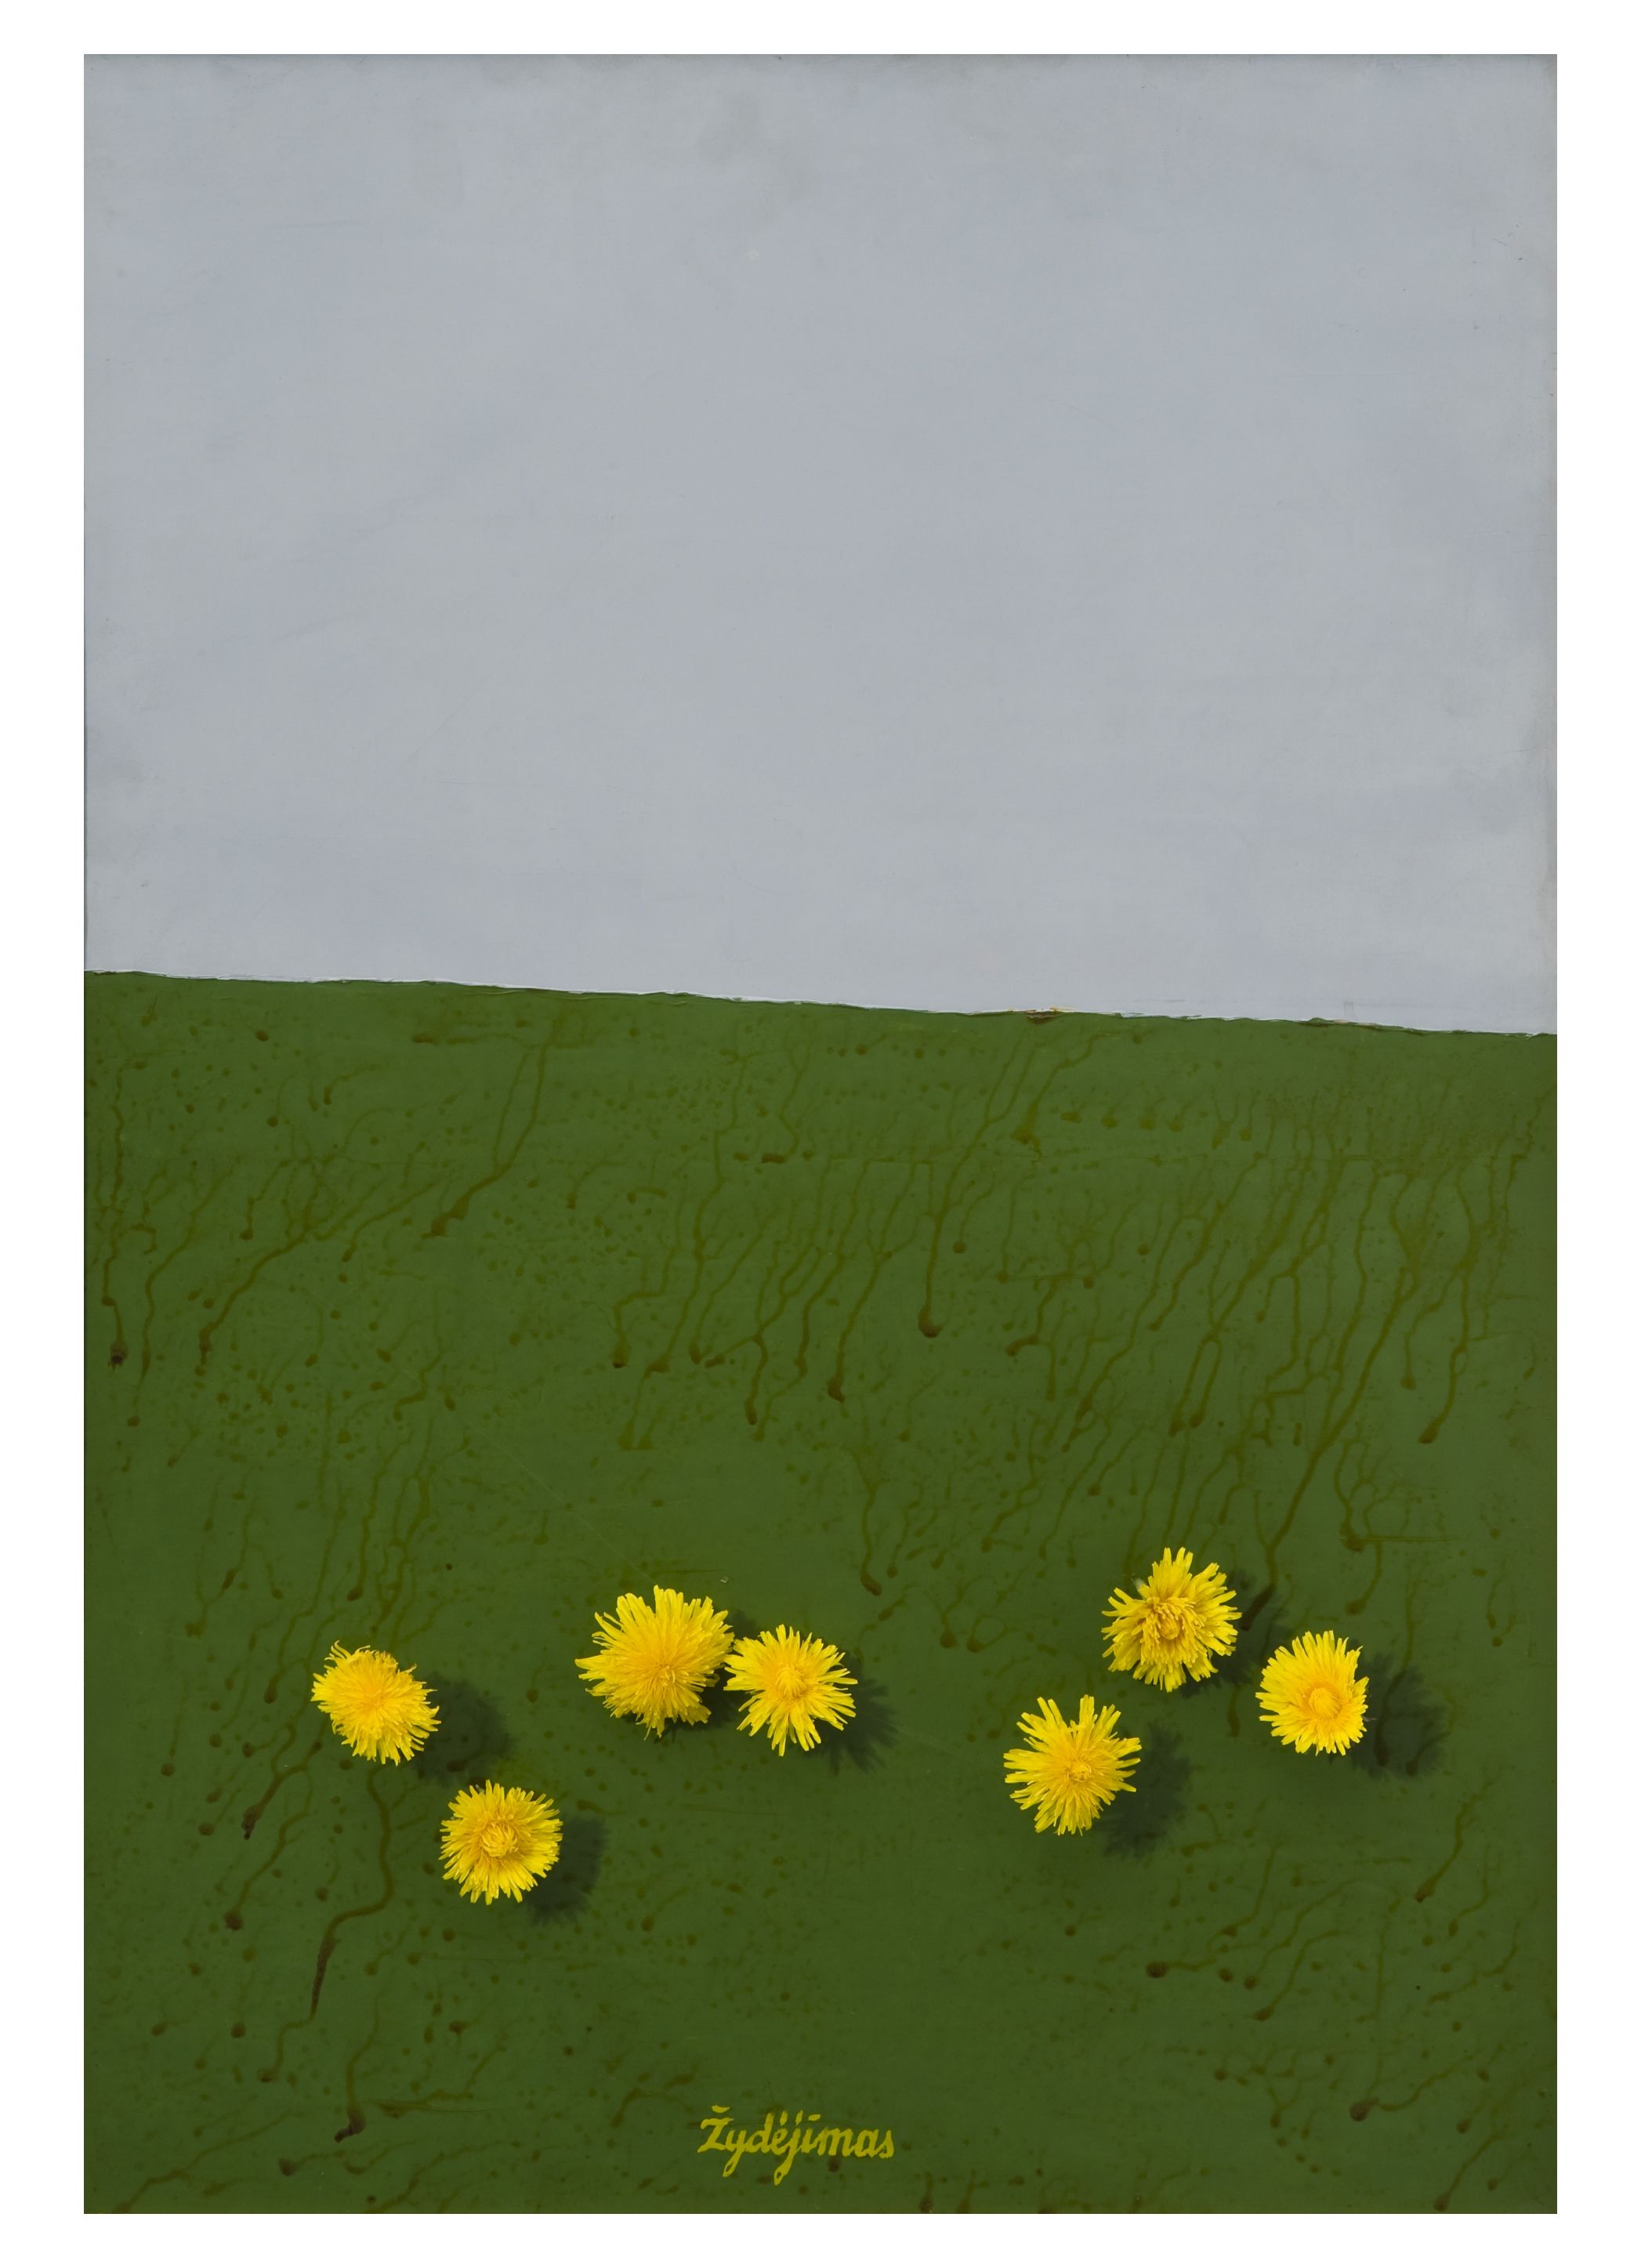 Leonas Linas Katinas, Seven Days in Rusnė or the Blooming of the Dandelions, 1971